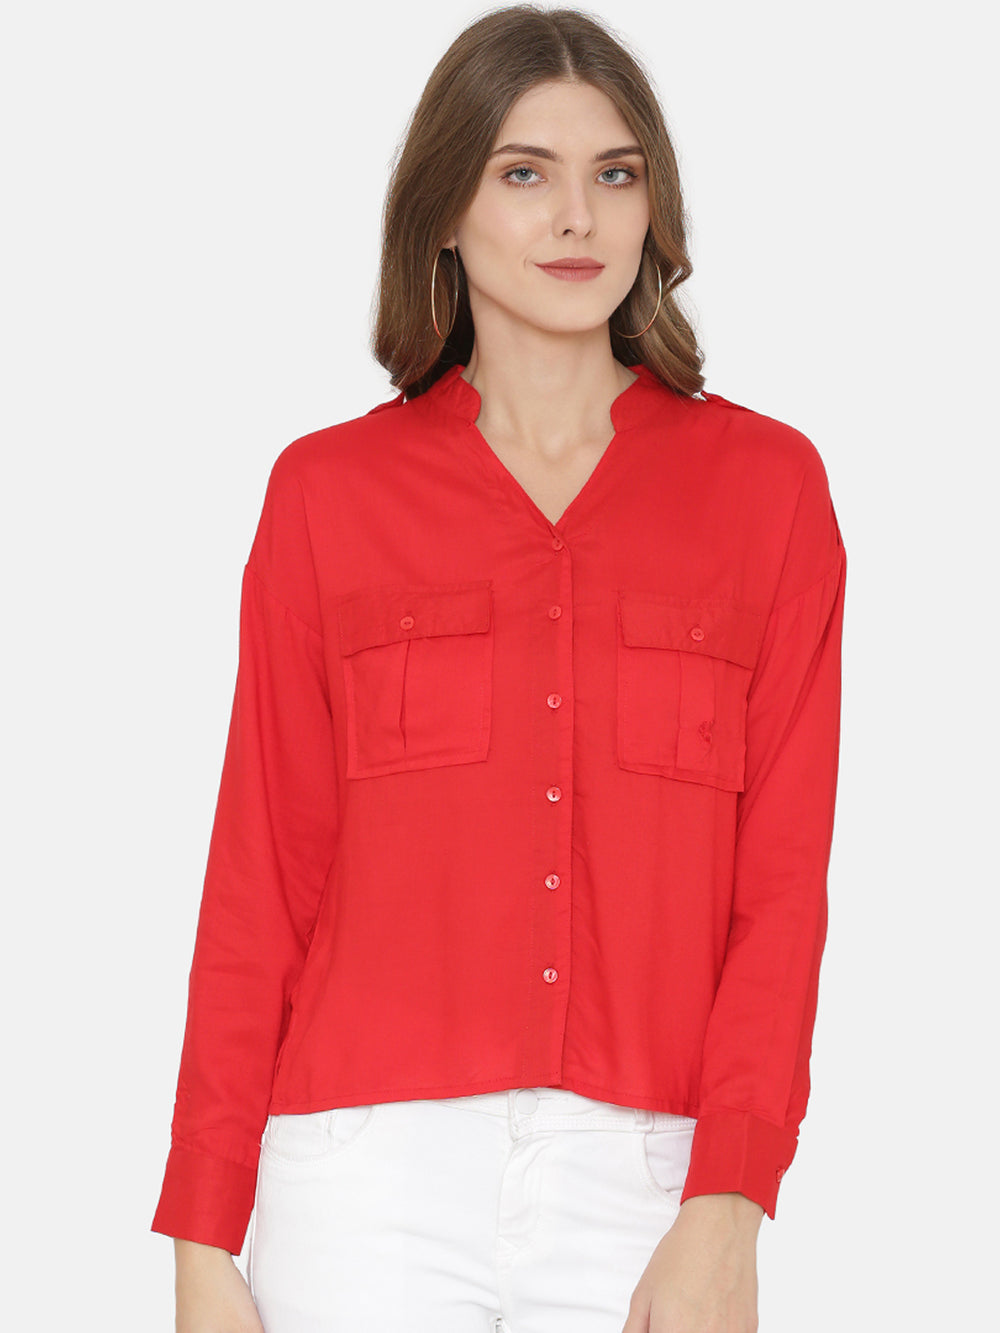 eyelet Women Red Comfort Slim Fit Solid Casual Shirt